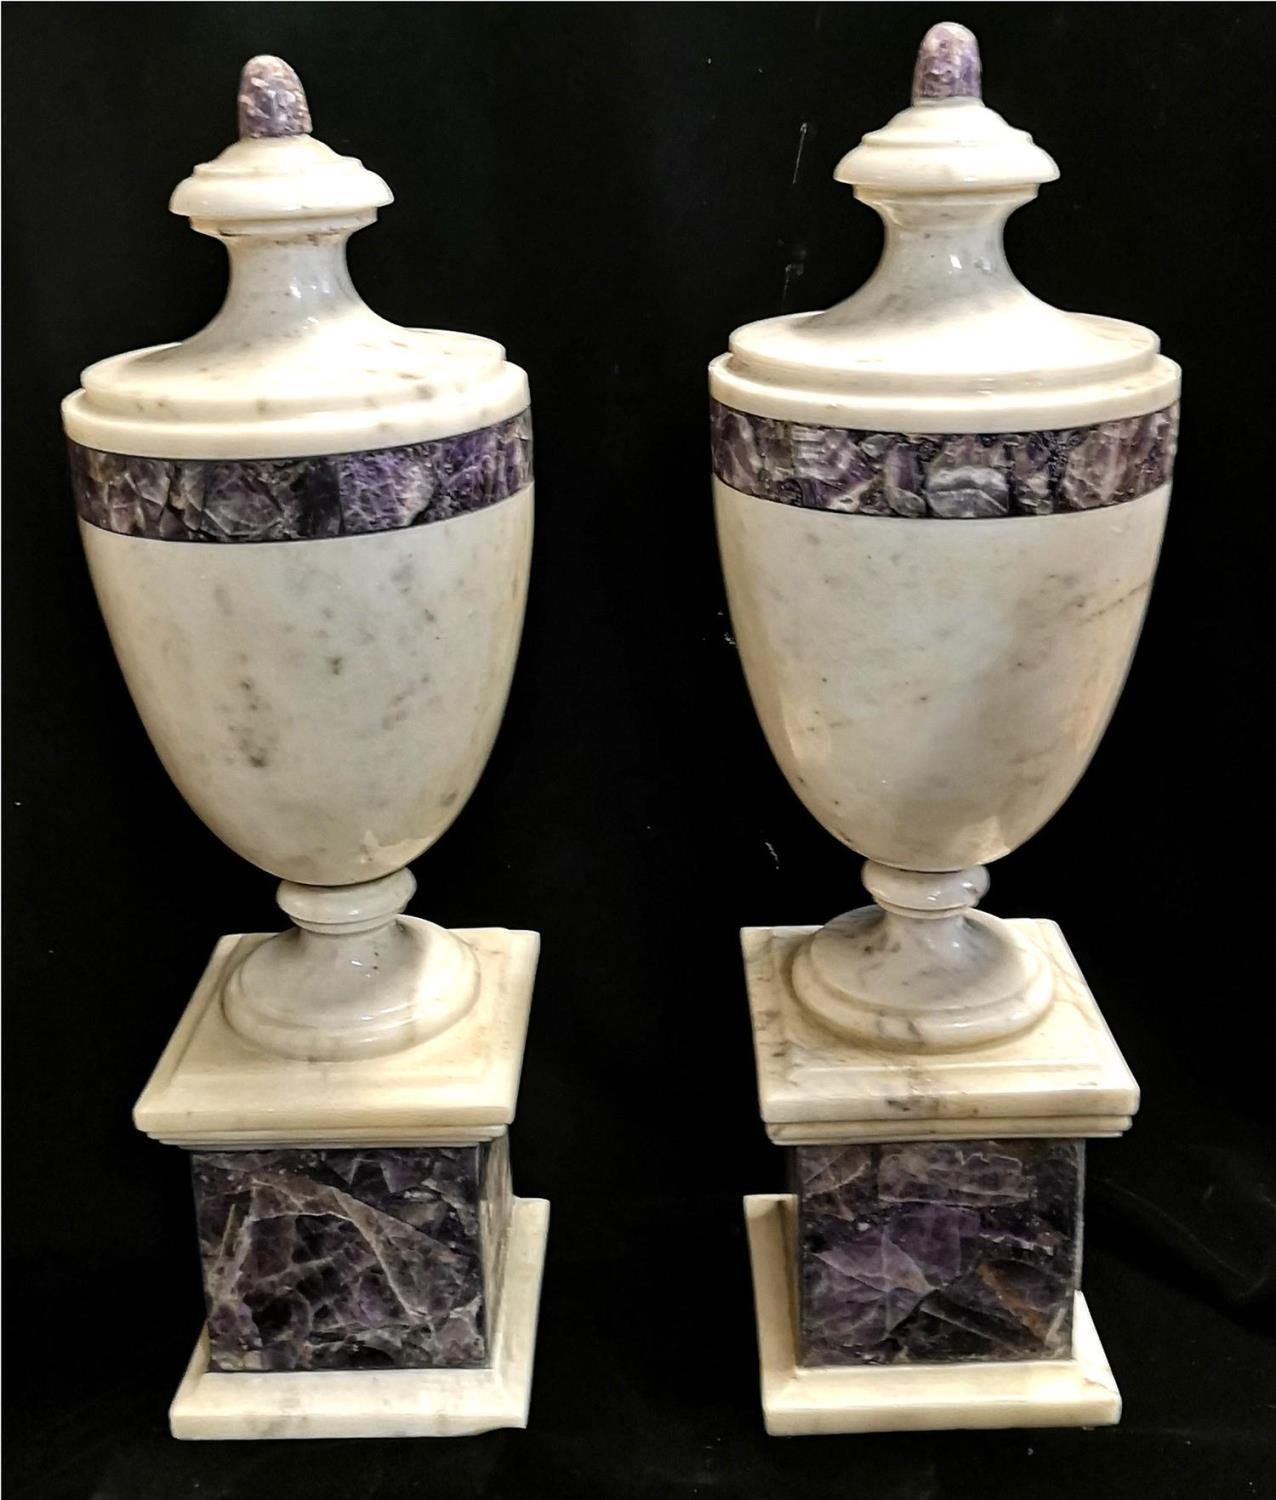 Lot 214 - A PAIR OF ITALIAN MARBLE URNS Classical form with amethyst marble banding.